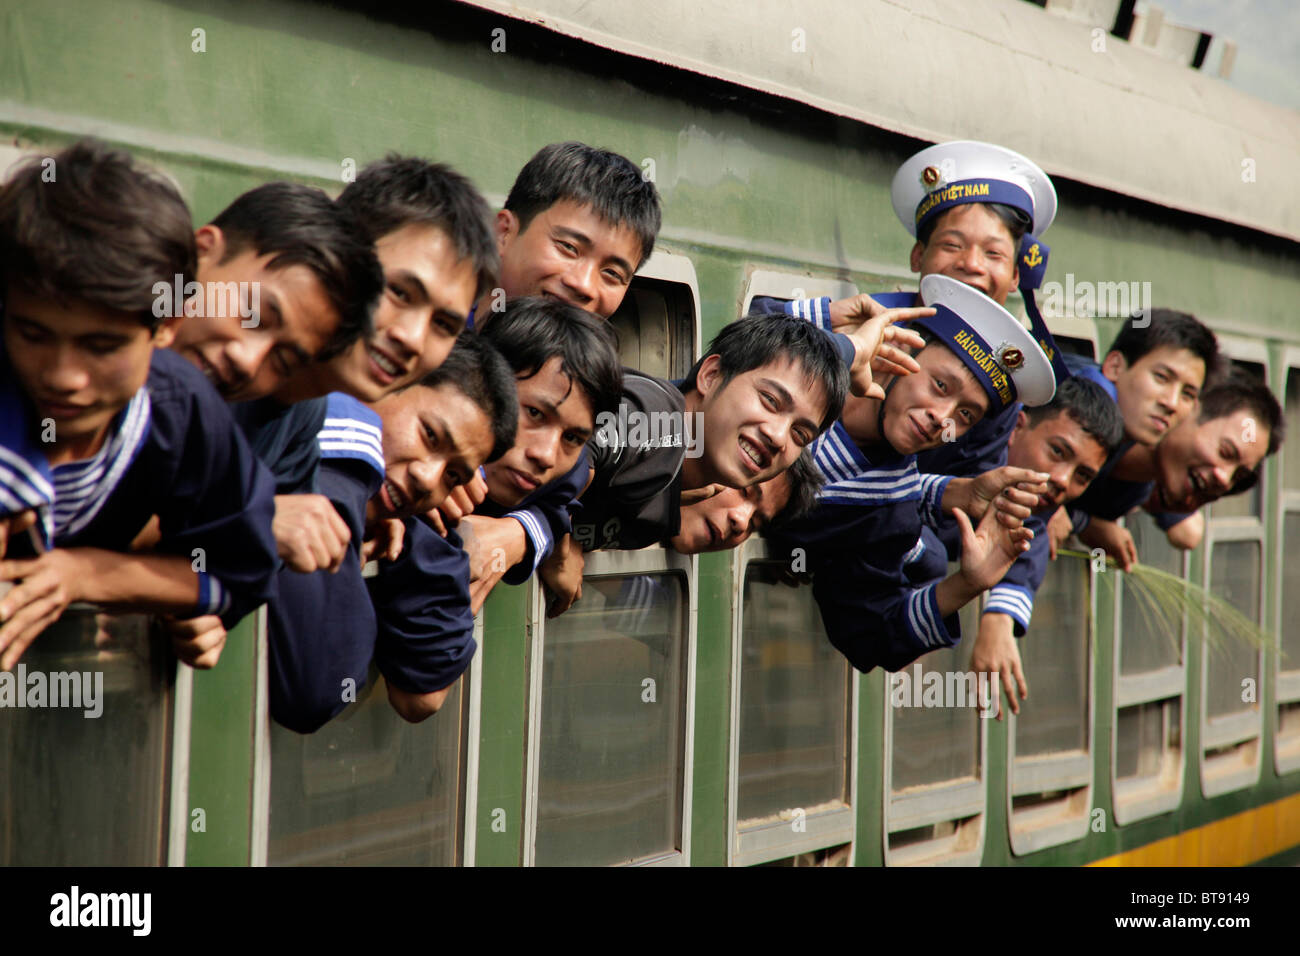 Vietnamese sailors in a train, Central Vietnam, Asia - Stock Image